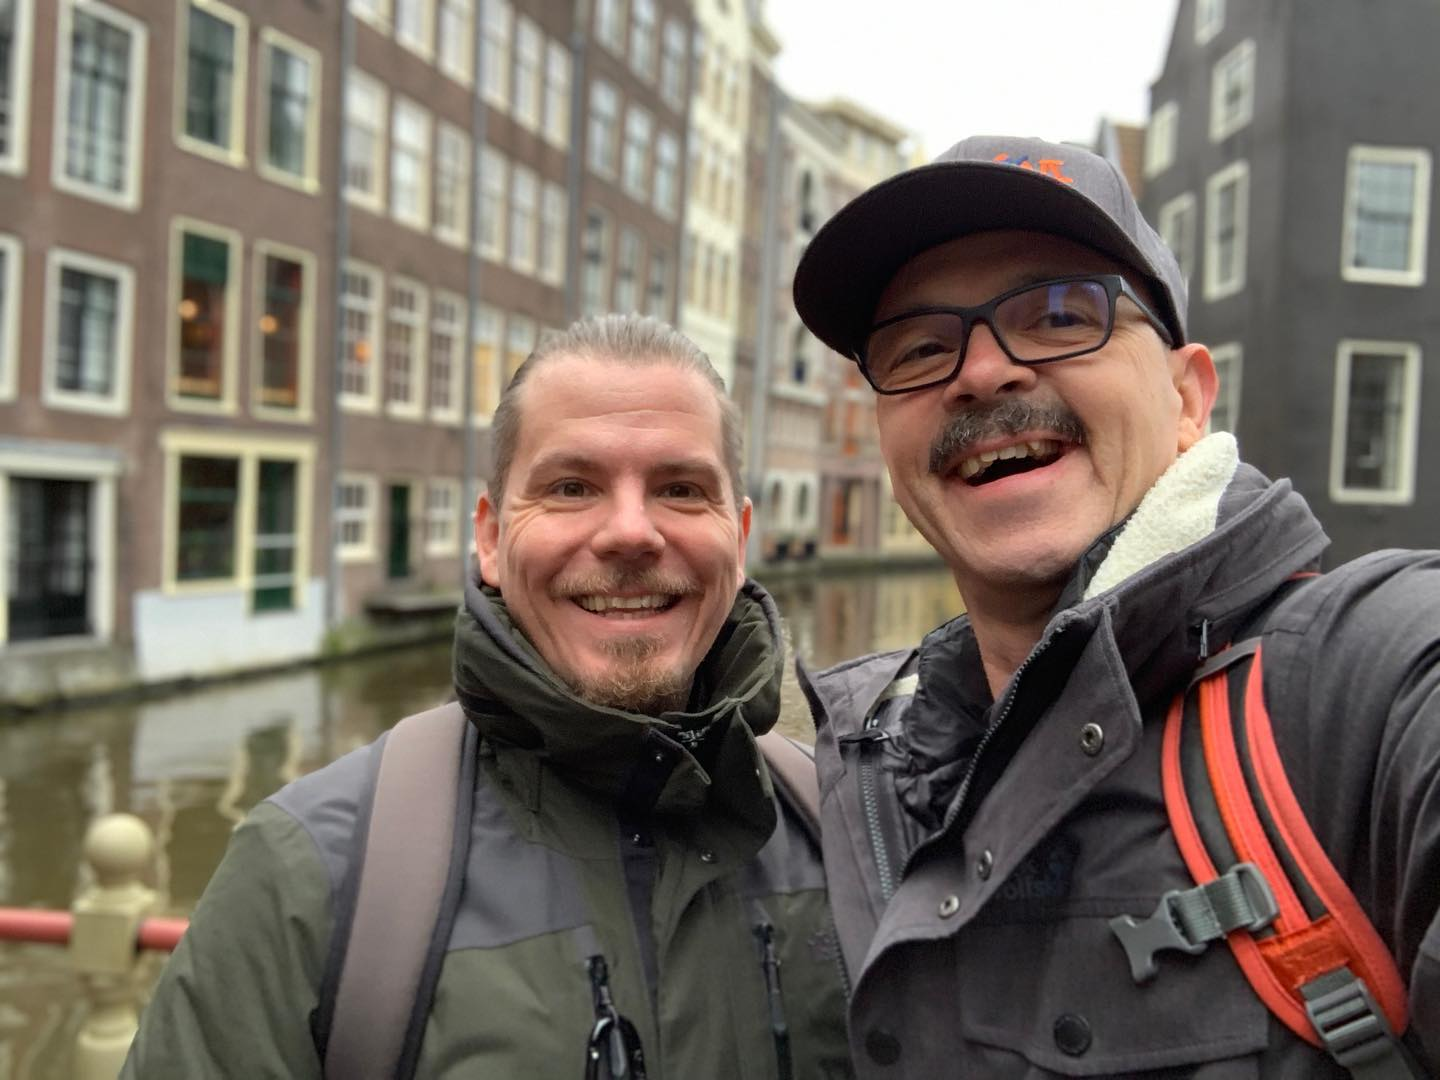 We are in Amsterdam for a short time. #netherlands🇳🇱